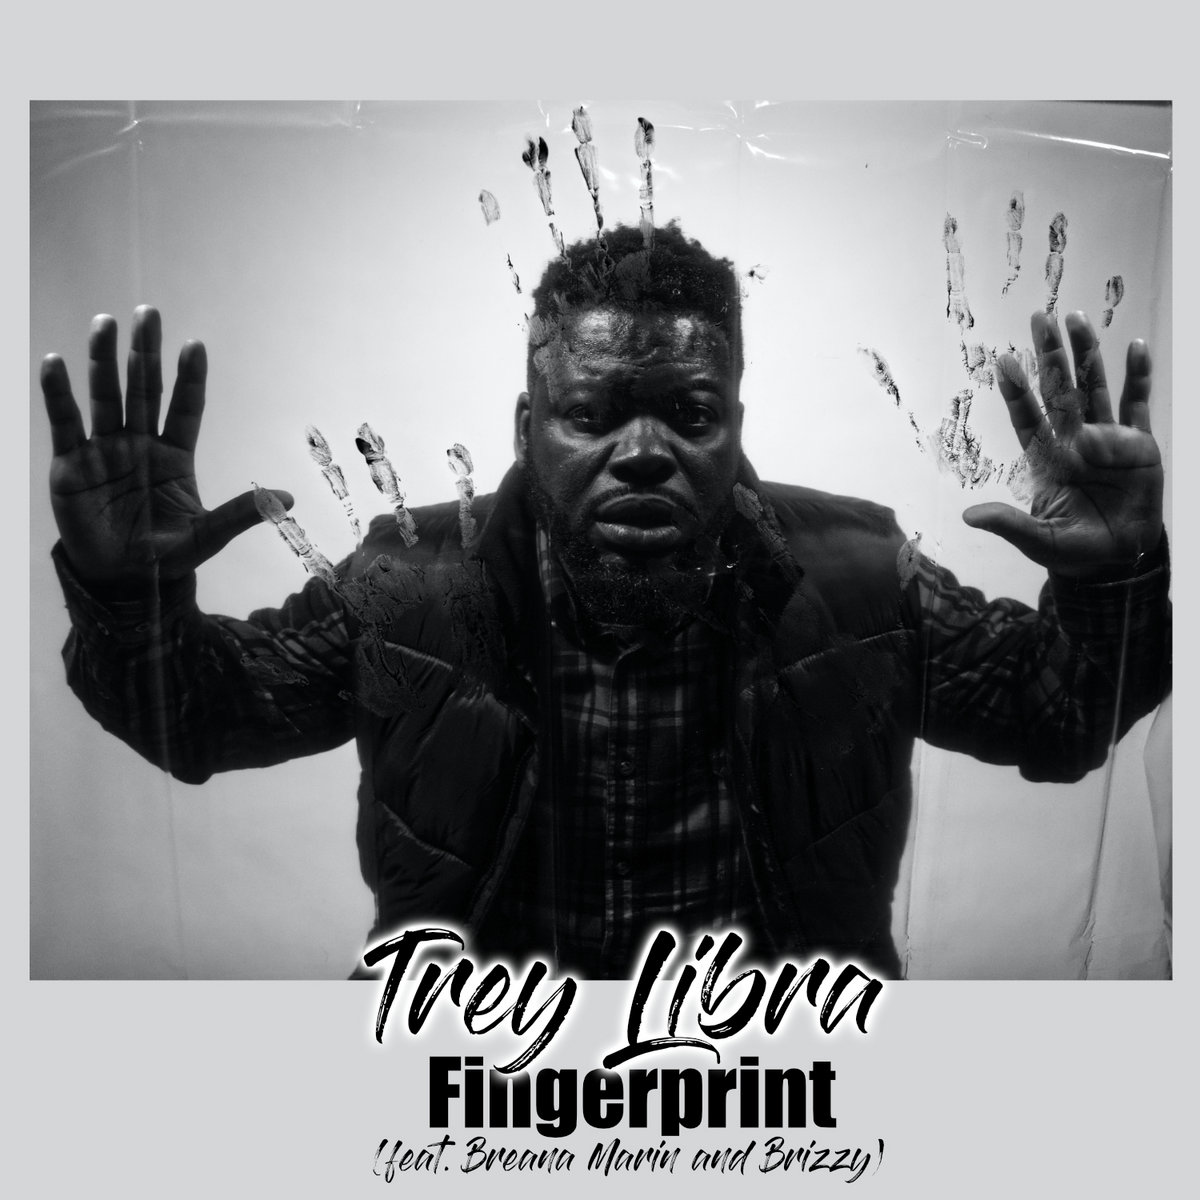 Fingerprint (feat. Breana Marin and Brizzy) by Trey Libra fka Jacob Izrael